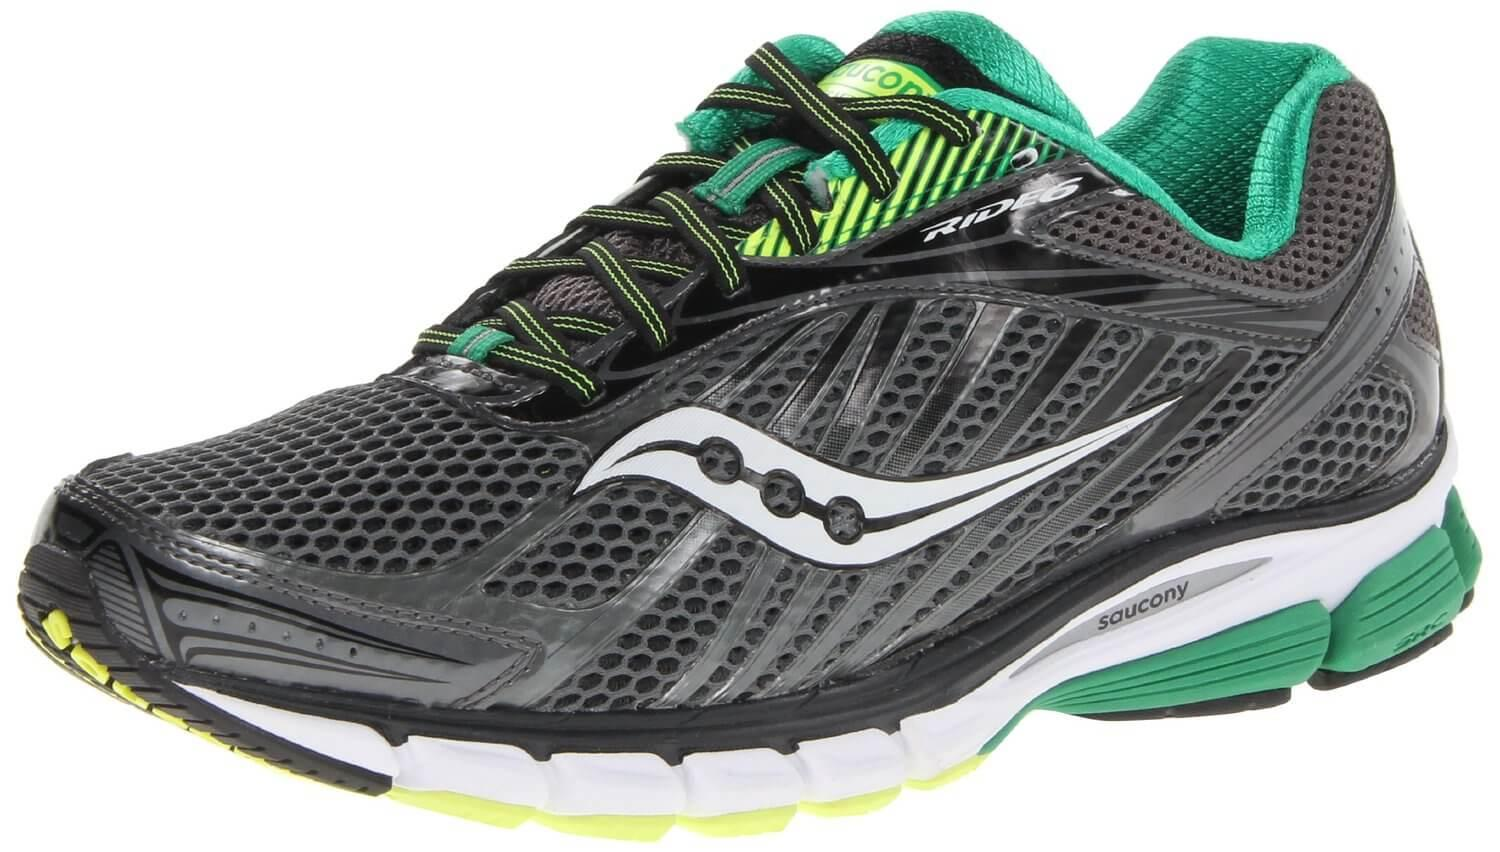 51b04368c11c Saucony Ride 6 Reviewed - To Buy or Not in Apr 2019